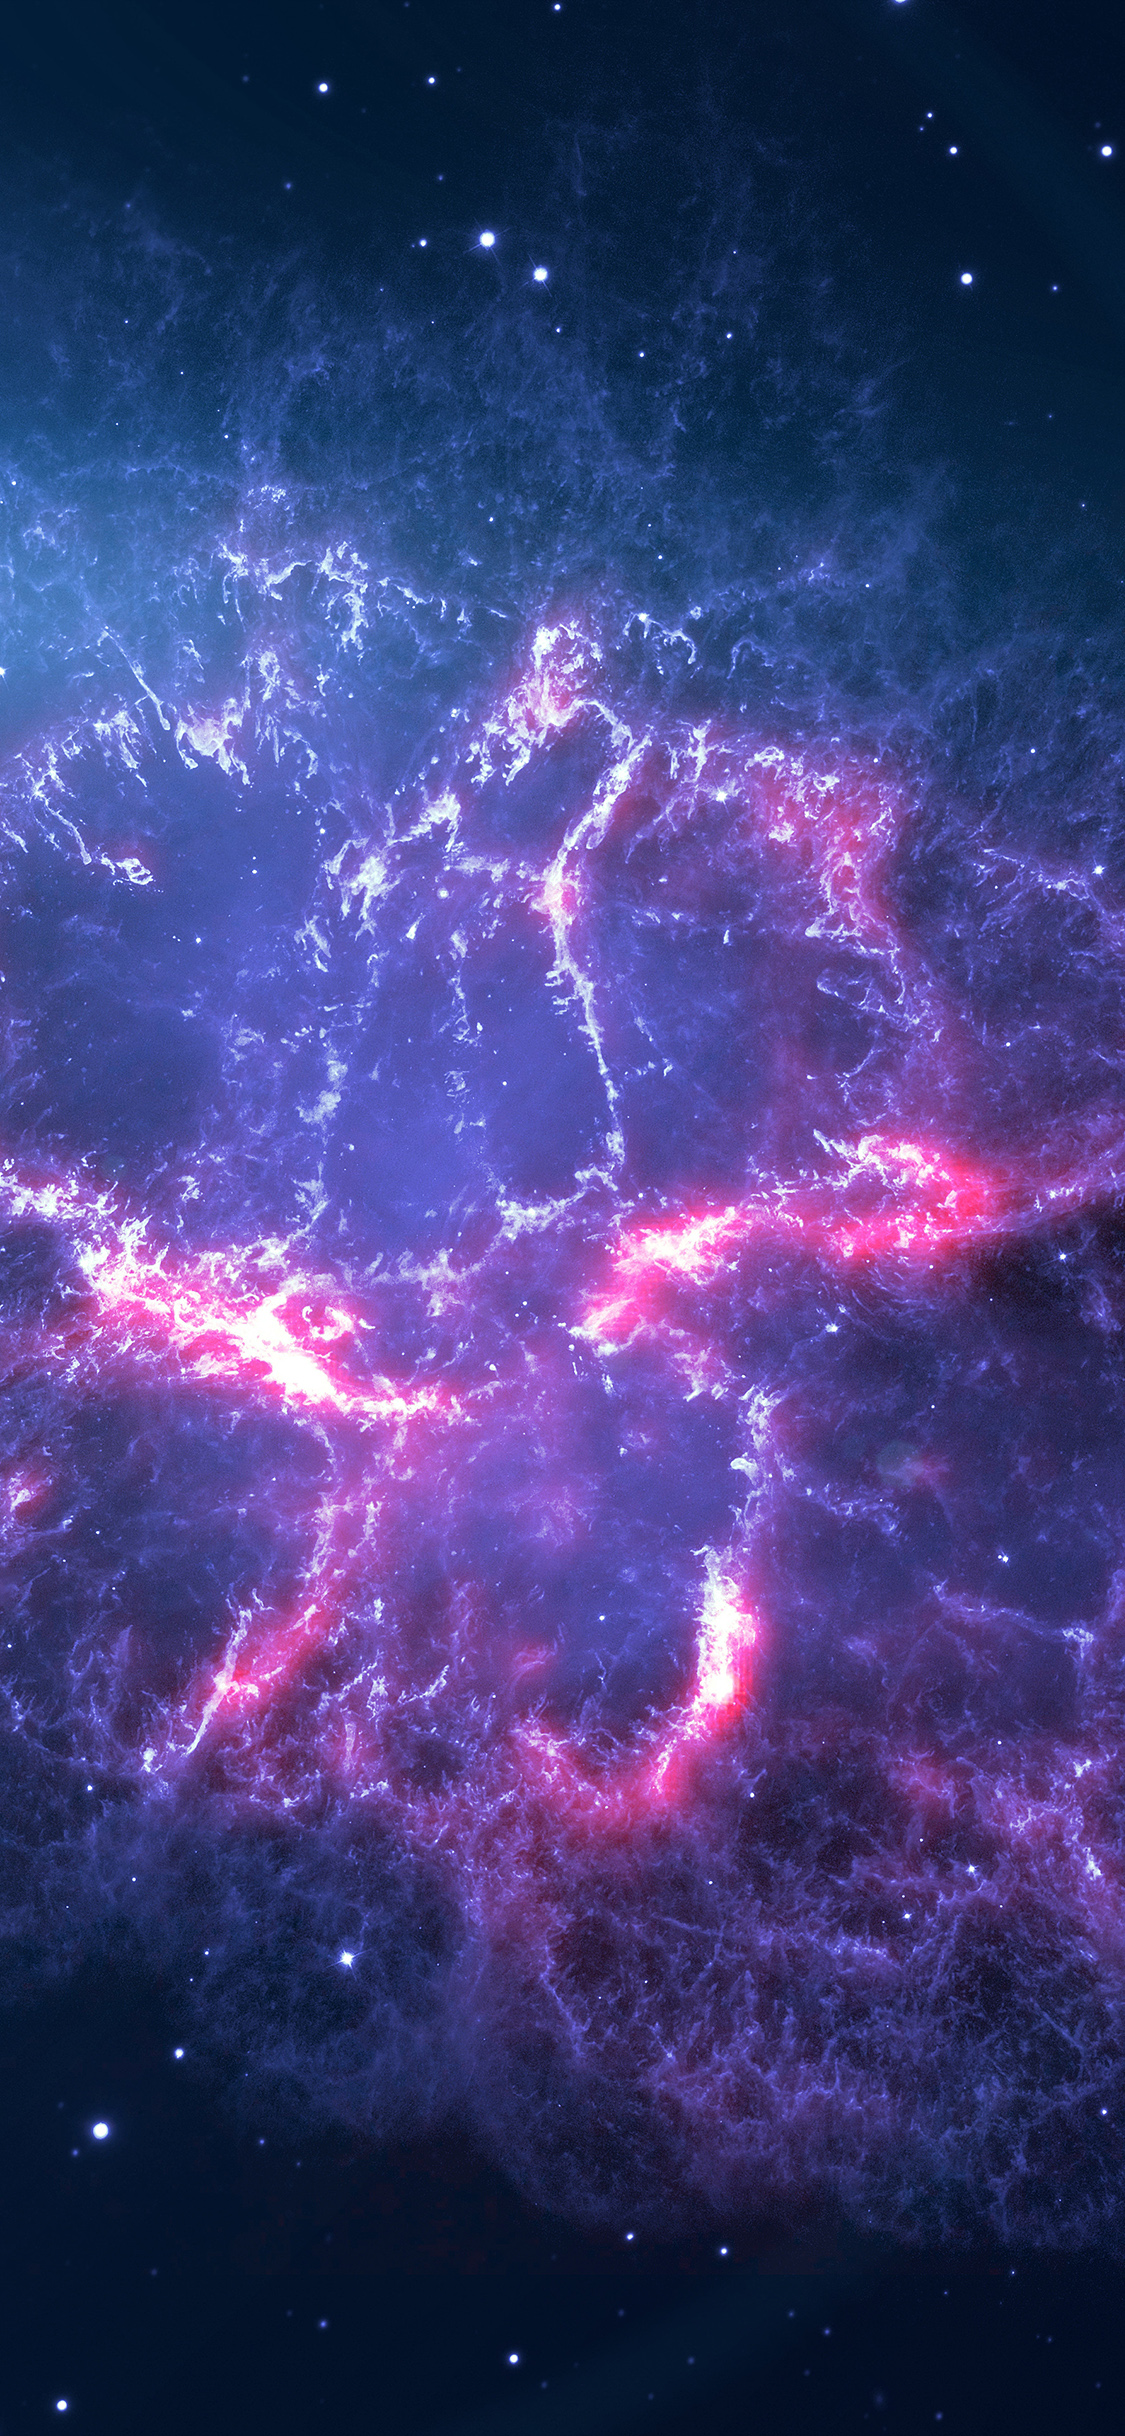 iPhonexpapers.com-Apple-iPhone-wallpaper-ms94-space-astronomy-galaxy-dark-purple-star-flare